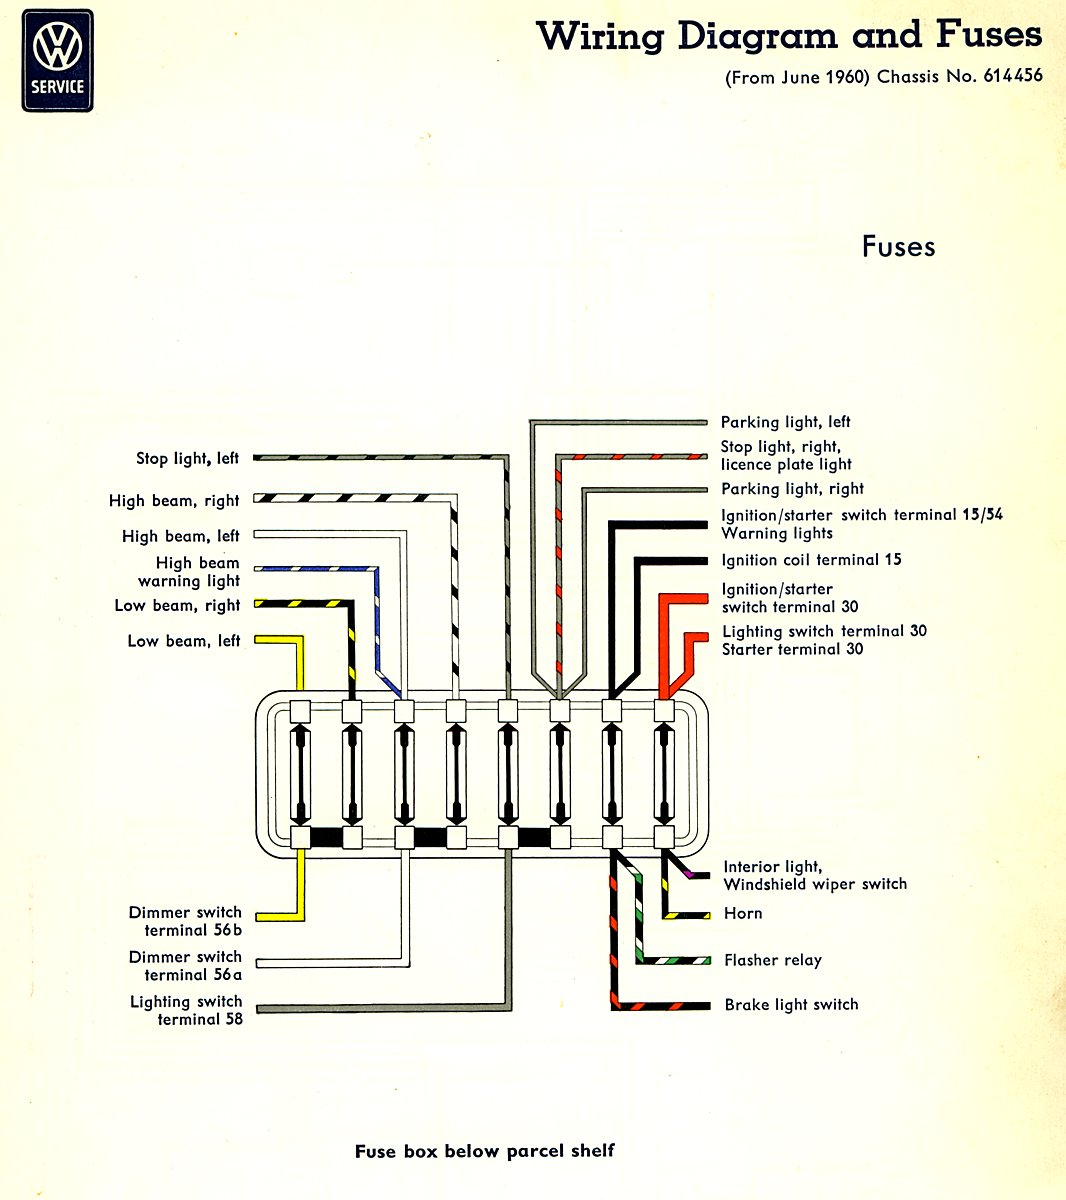 1961 Chevrolet Fuse Block Diagram Worksheet And Wiring Box For The 1956 Chevy 210 Thesamba Com Type 2 Diagrams Rh 2003 S10 2002 Trailblazer